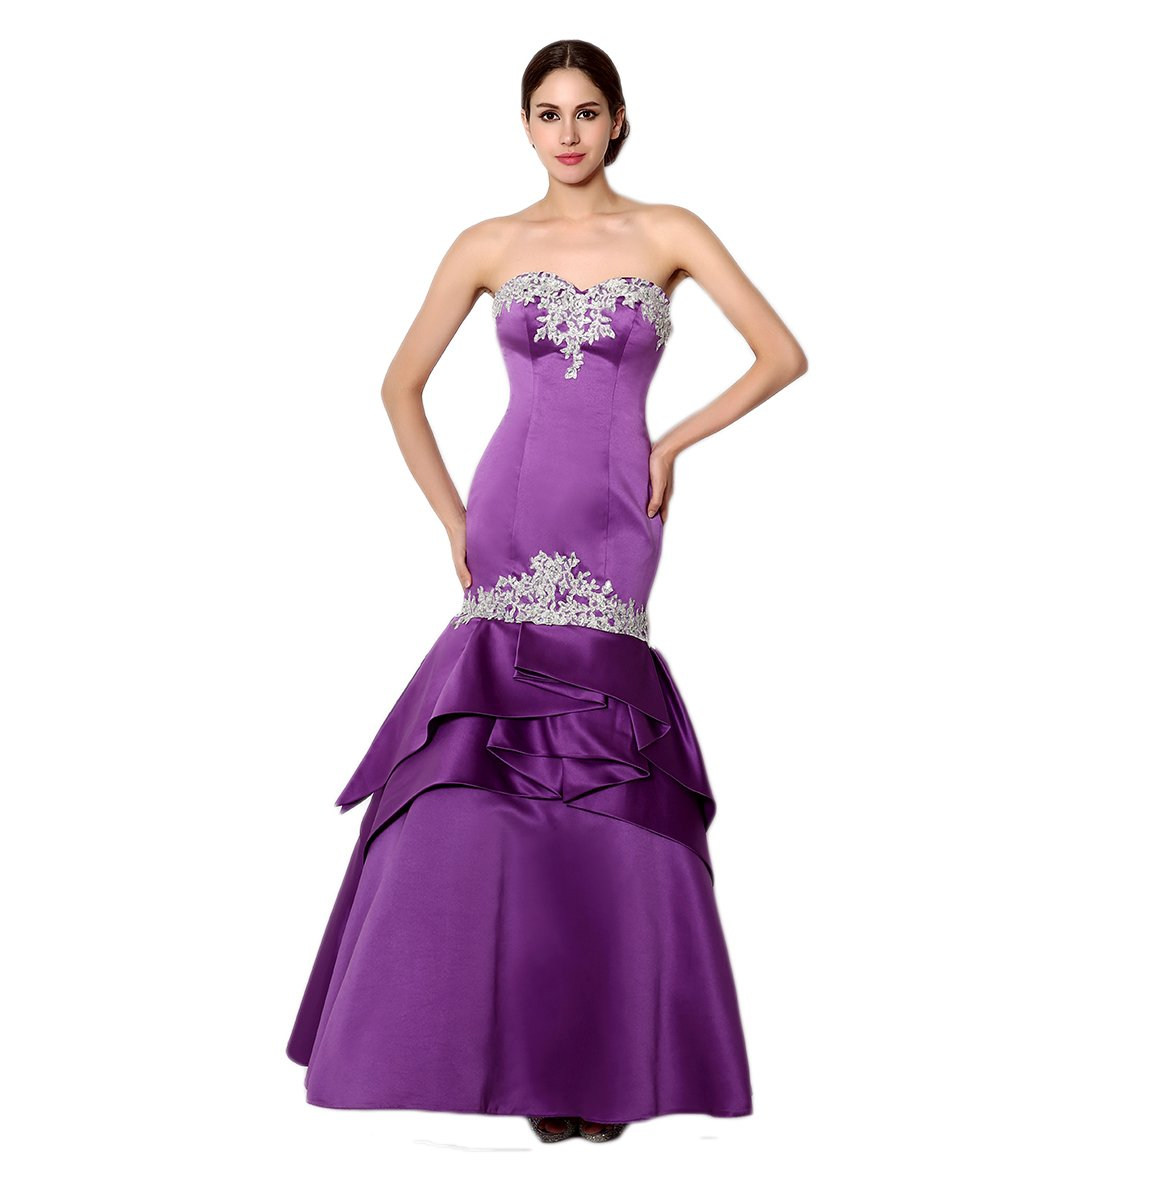 Love Dress Applique Mermaid Prom Dress Evening Dress Us 16 by Love To Dress (Image #1)